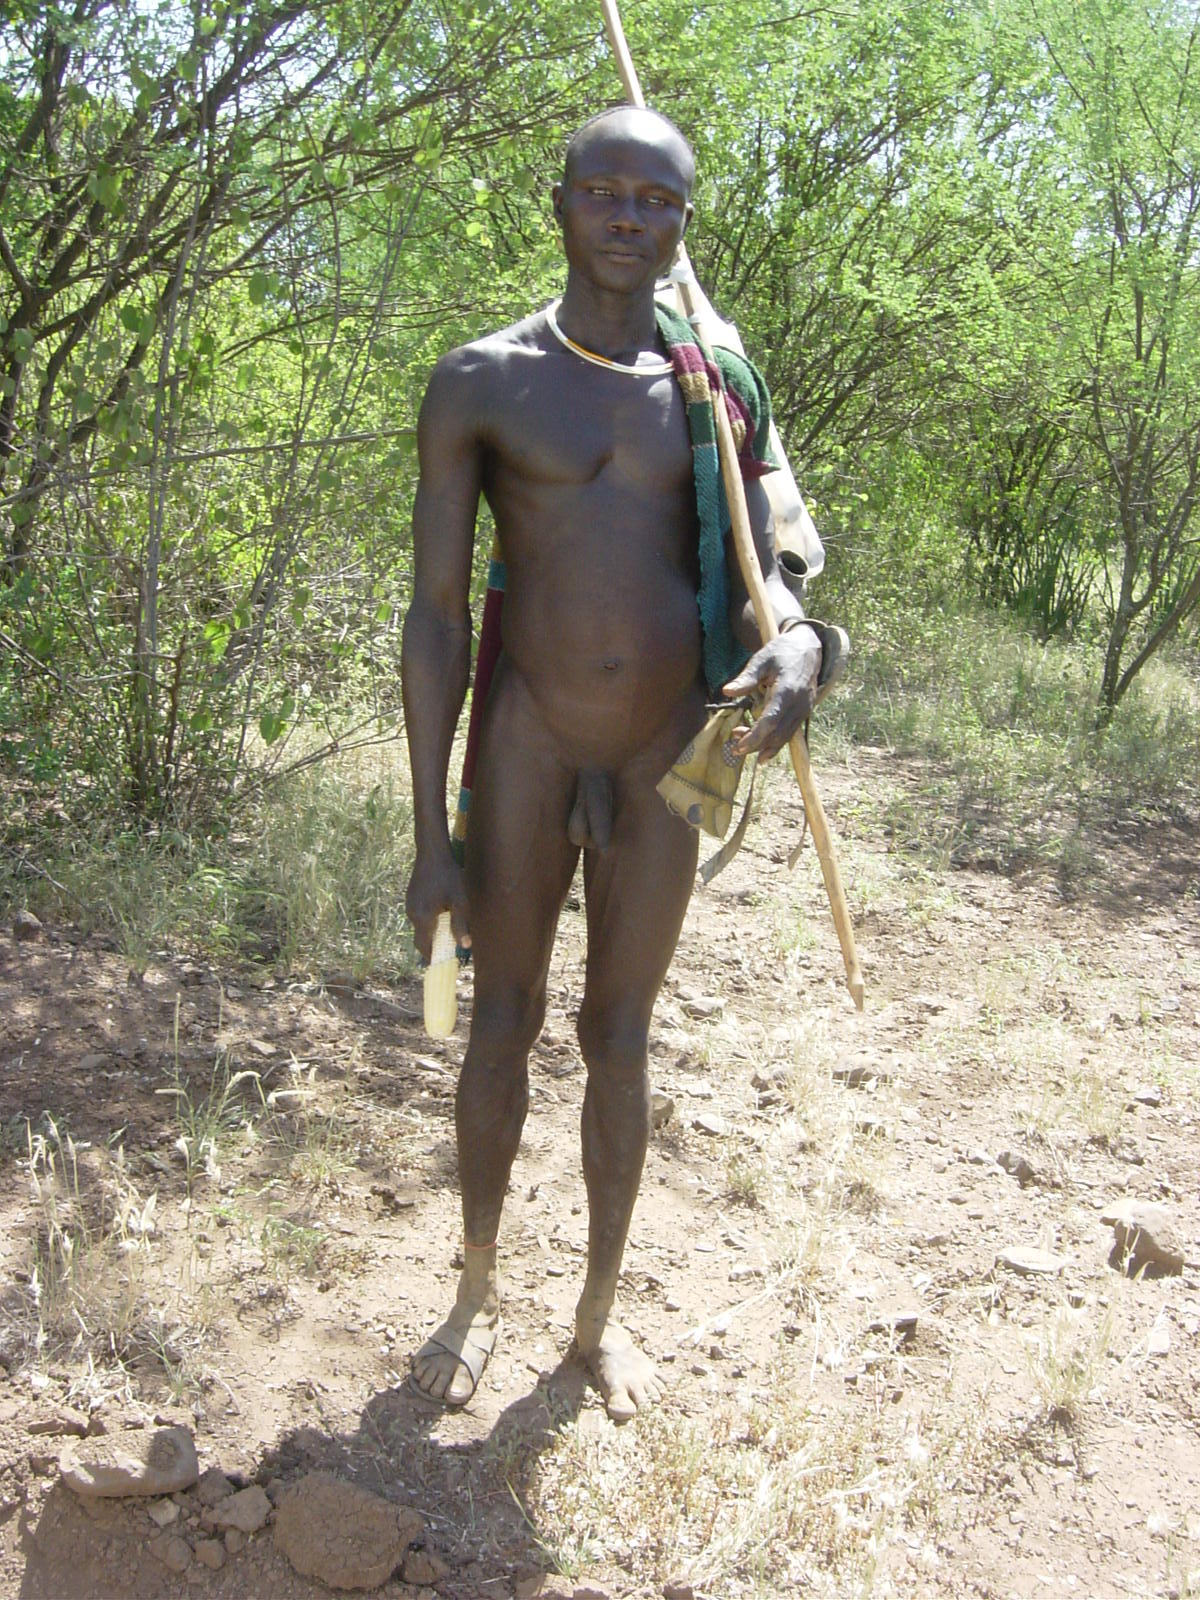 Suggest you Men nude african tribes photos apologise